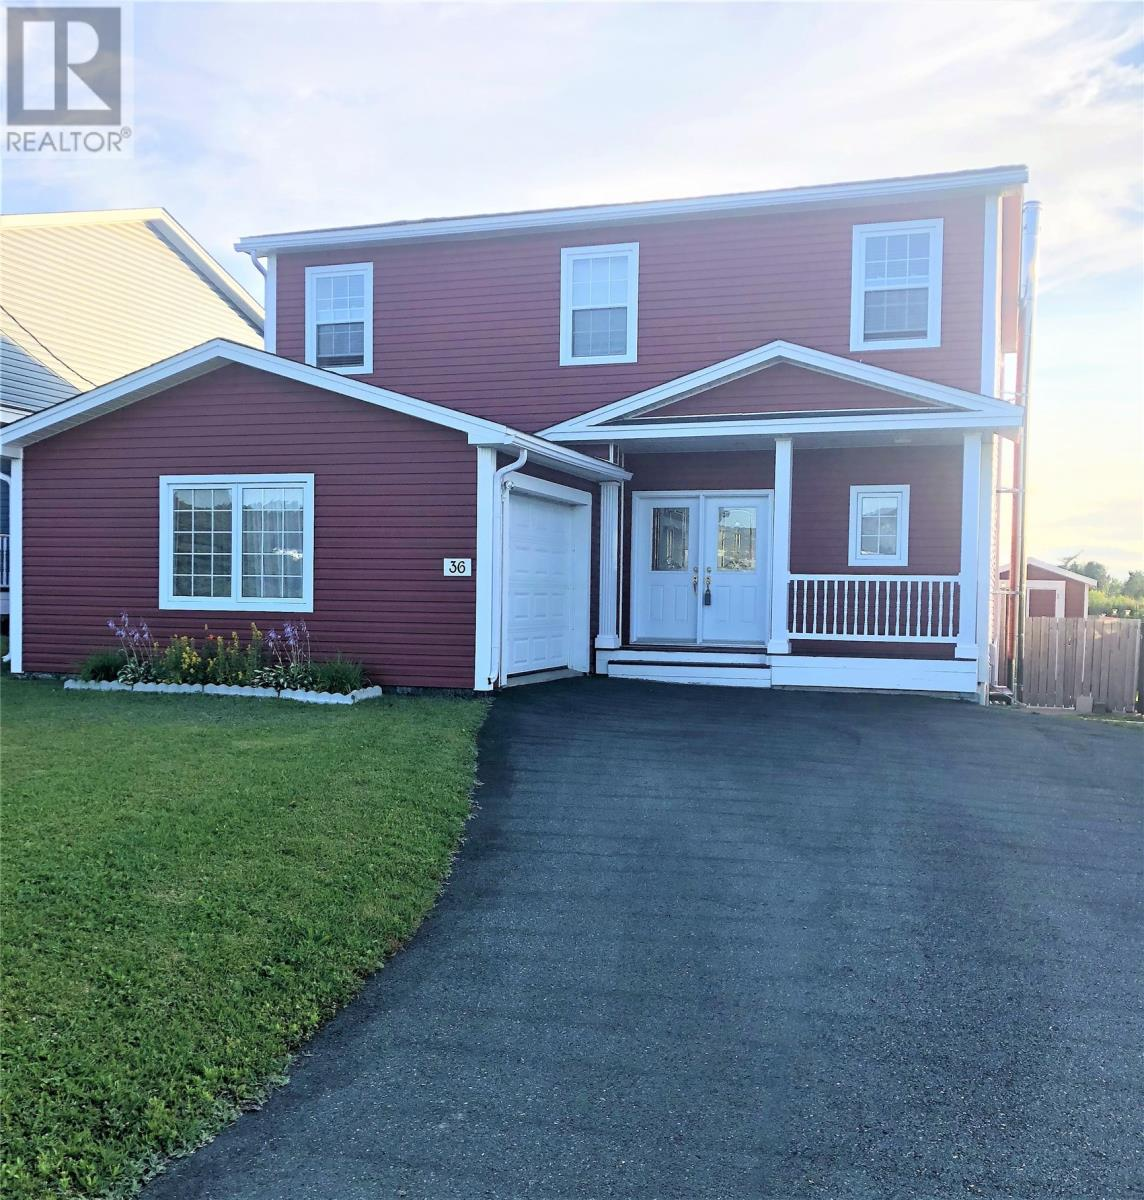 Removed: 36 Talcville Road, Conception Bay South, NL - Removed on 2019-01-22 04:15:03